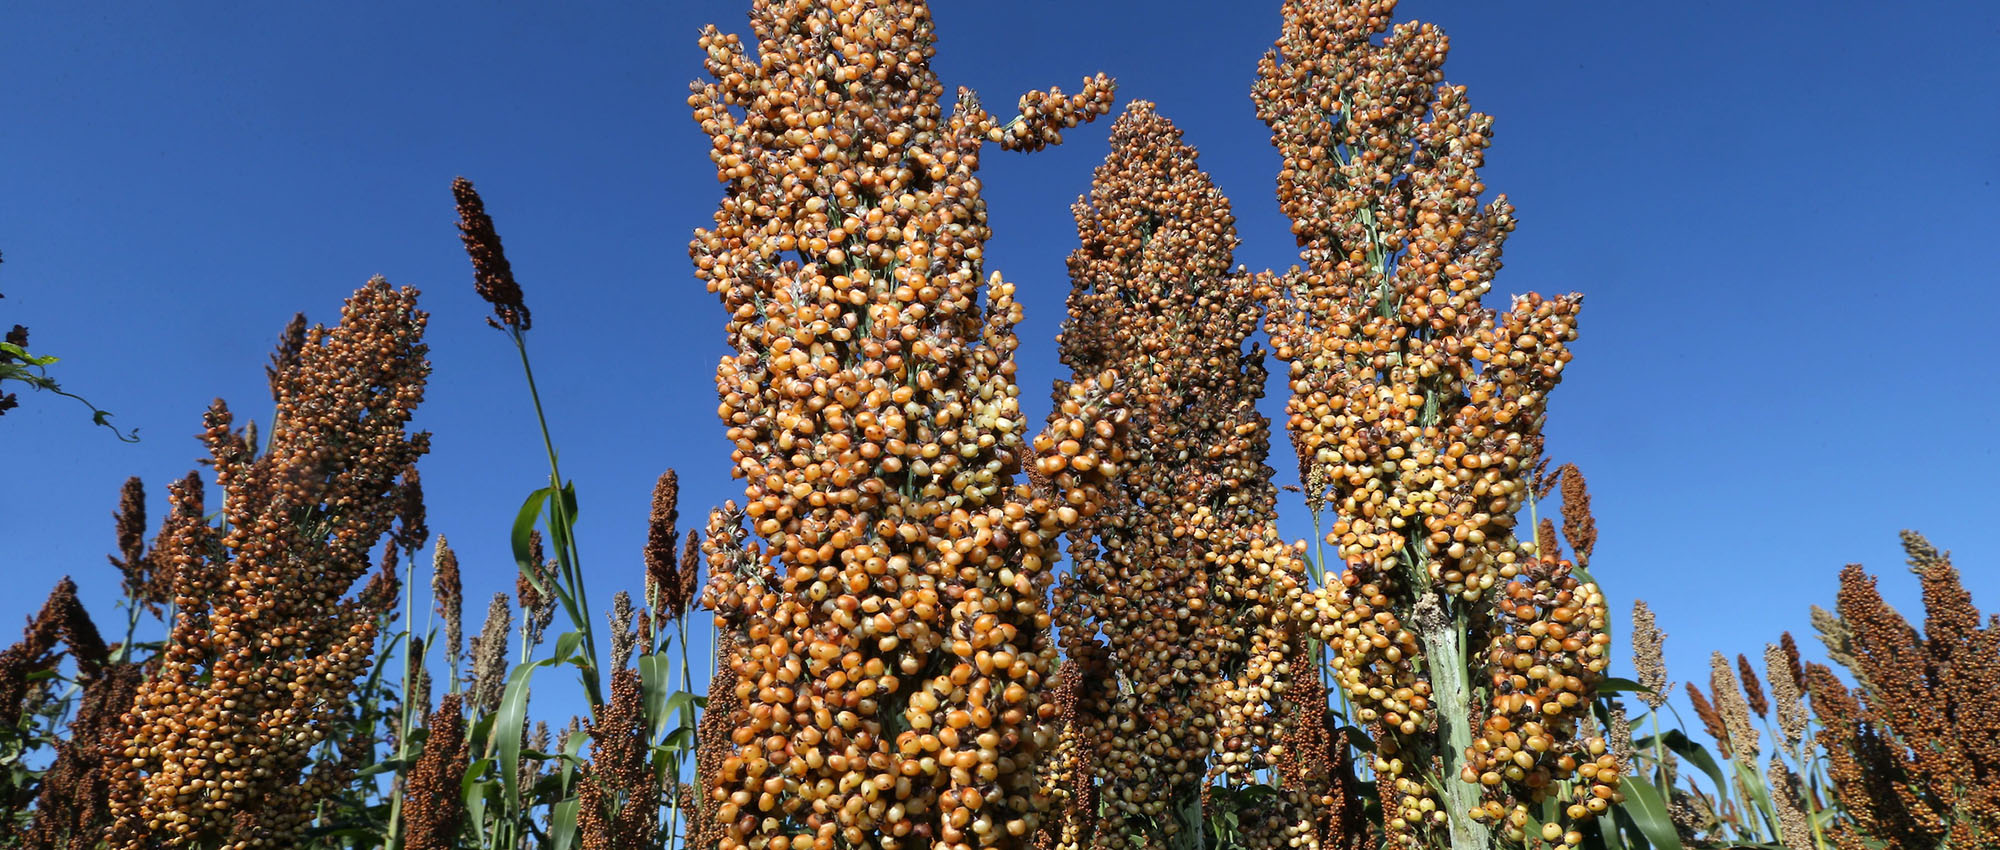 field of sorghum set against blue skies